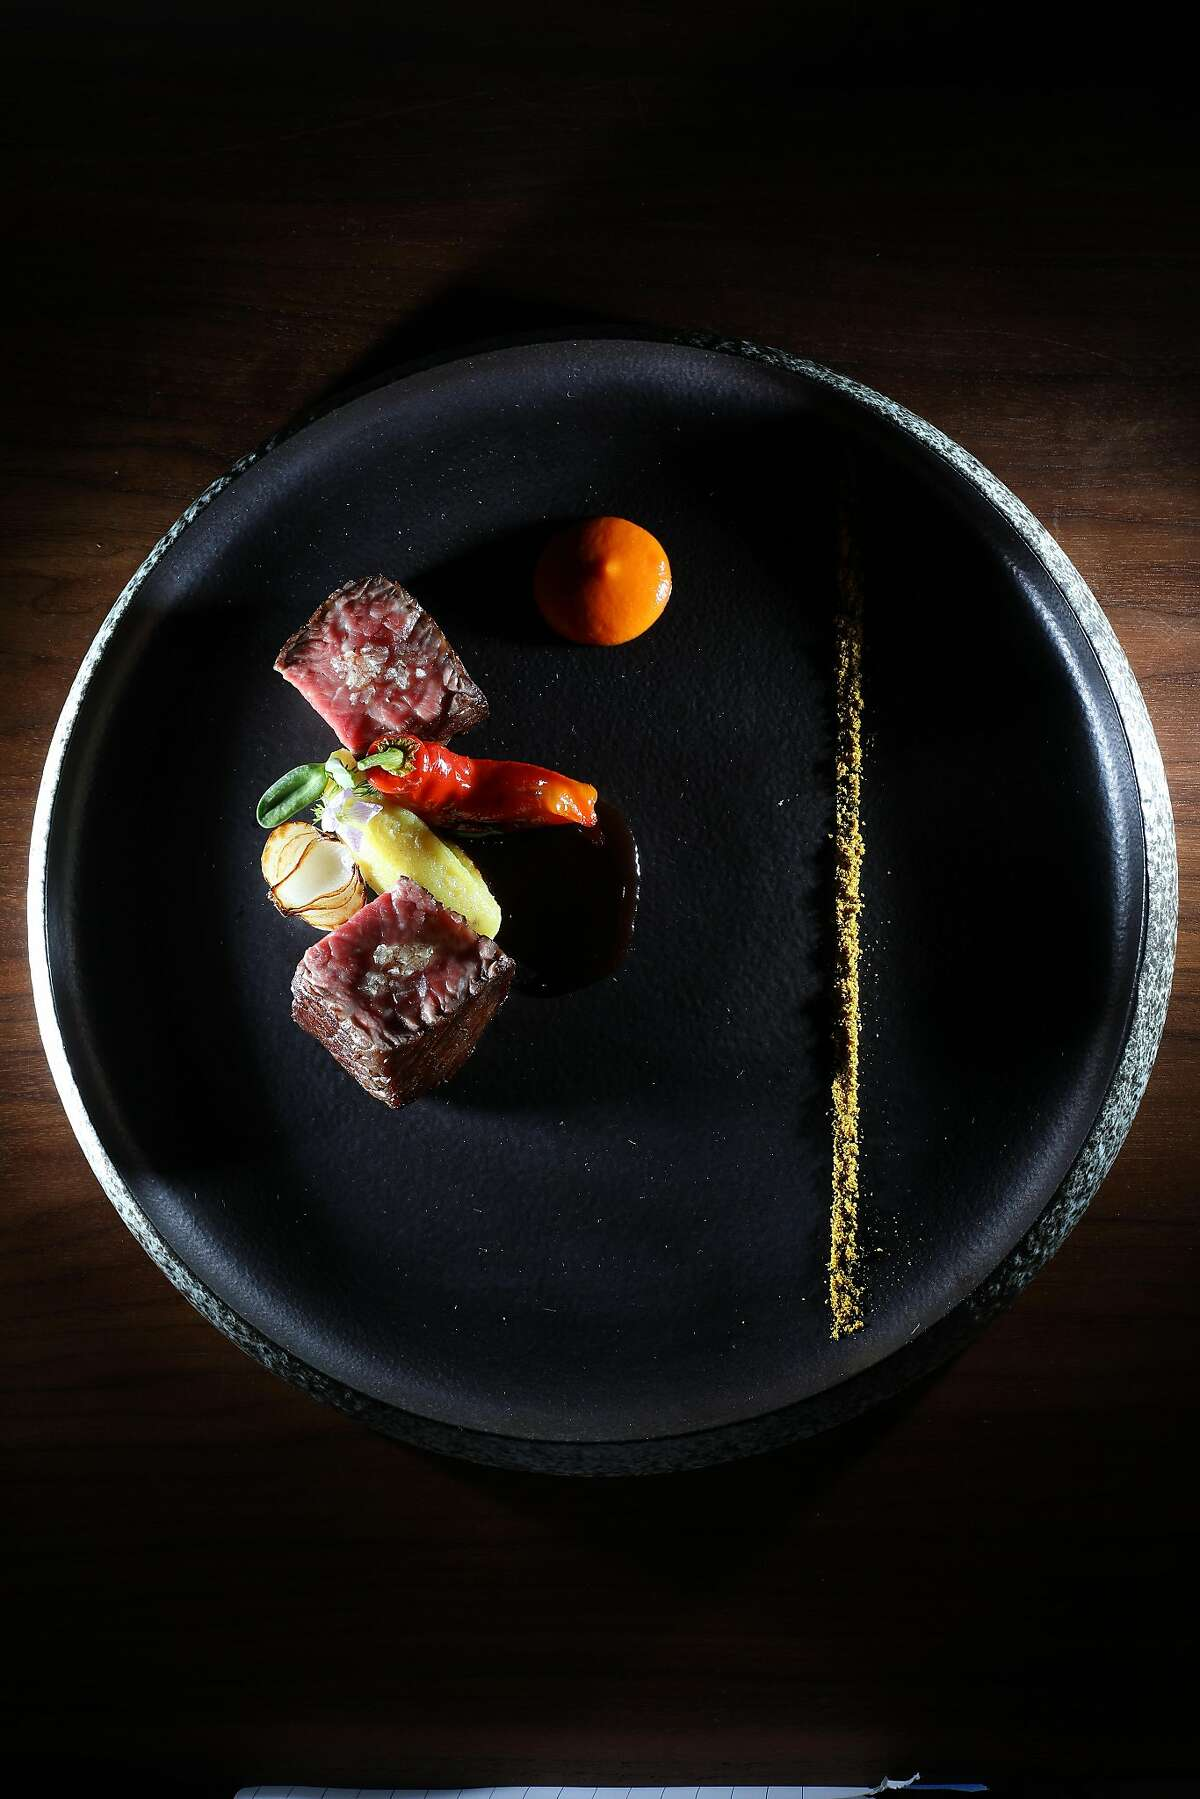 Yemenite-style beef ribeye - matbucha, cipollini onion, white yam- from course five of Michael Mina's 6 course menu is seen on Friday, September 7, 2018 in San Francisco, Calif.